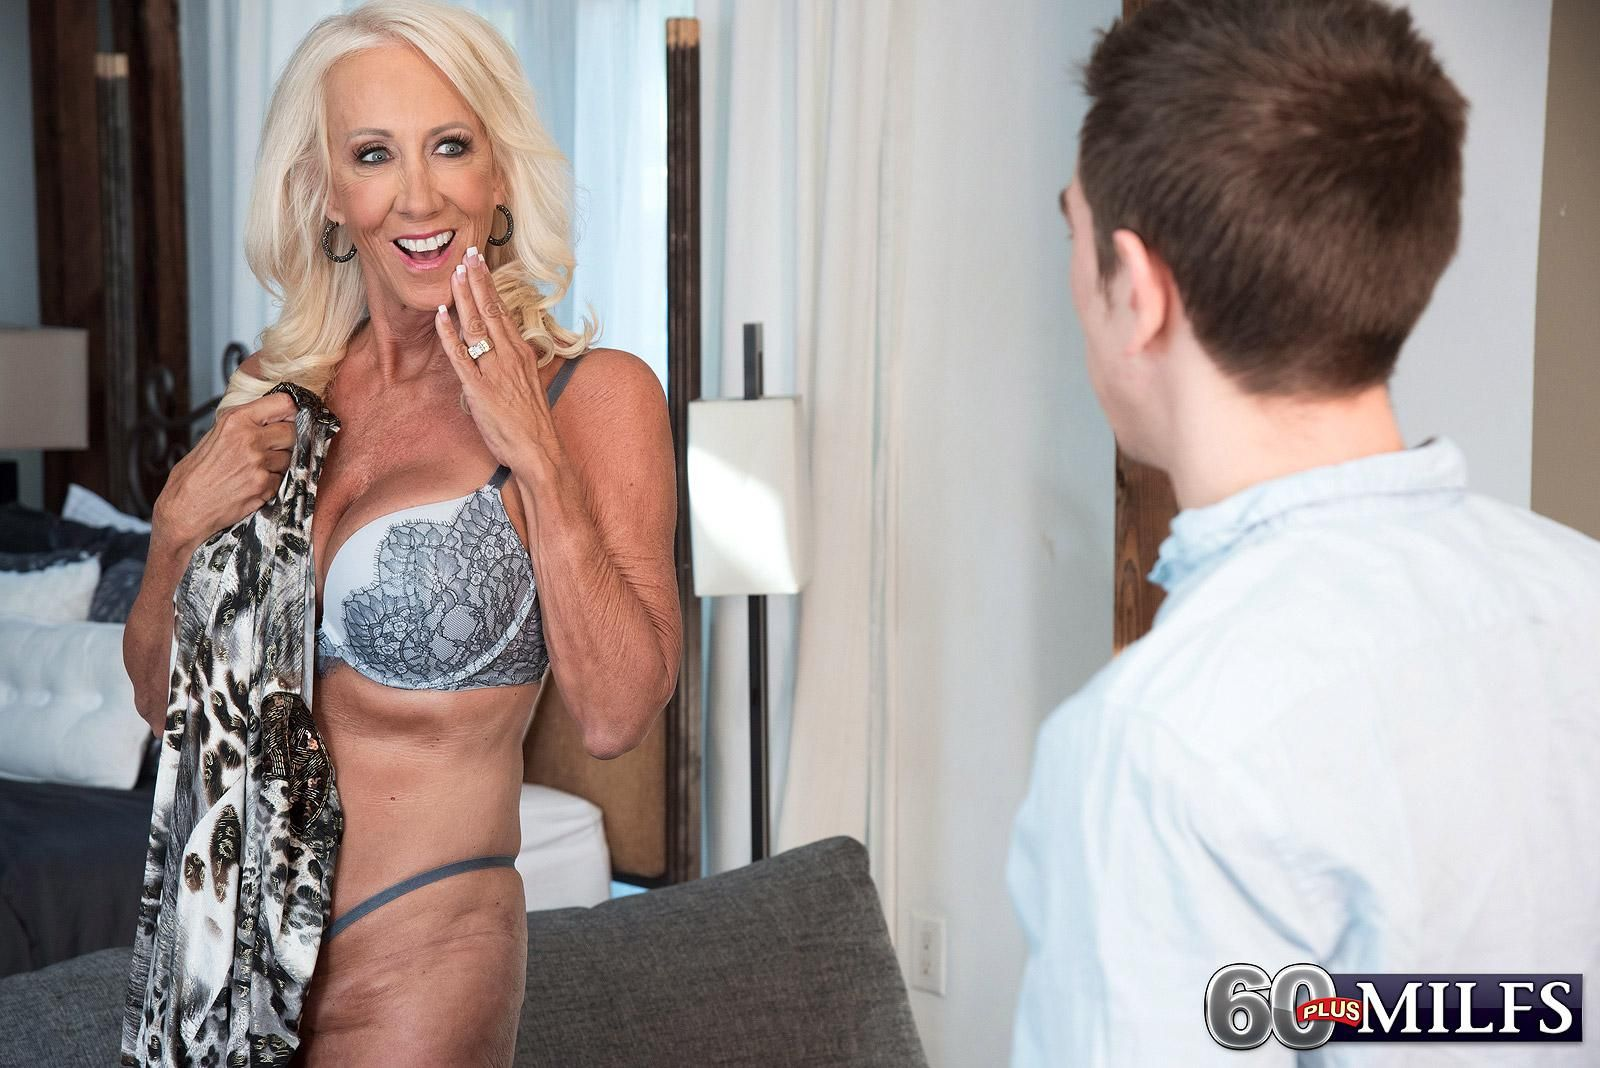 Hot 60 plus woman with blonde hair Madison Milstar seduces a boy in bra and panties